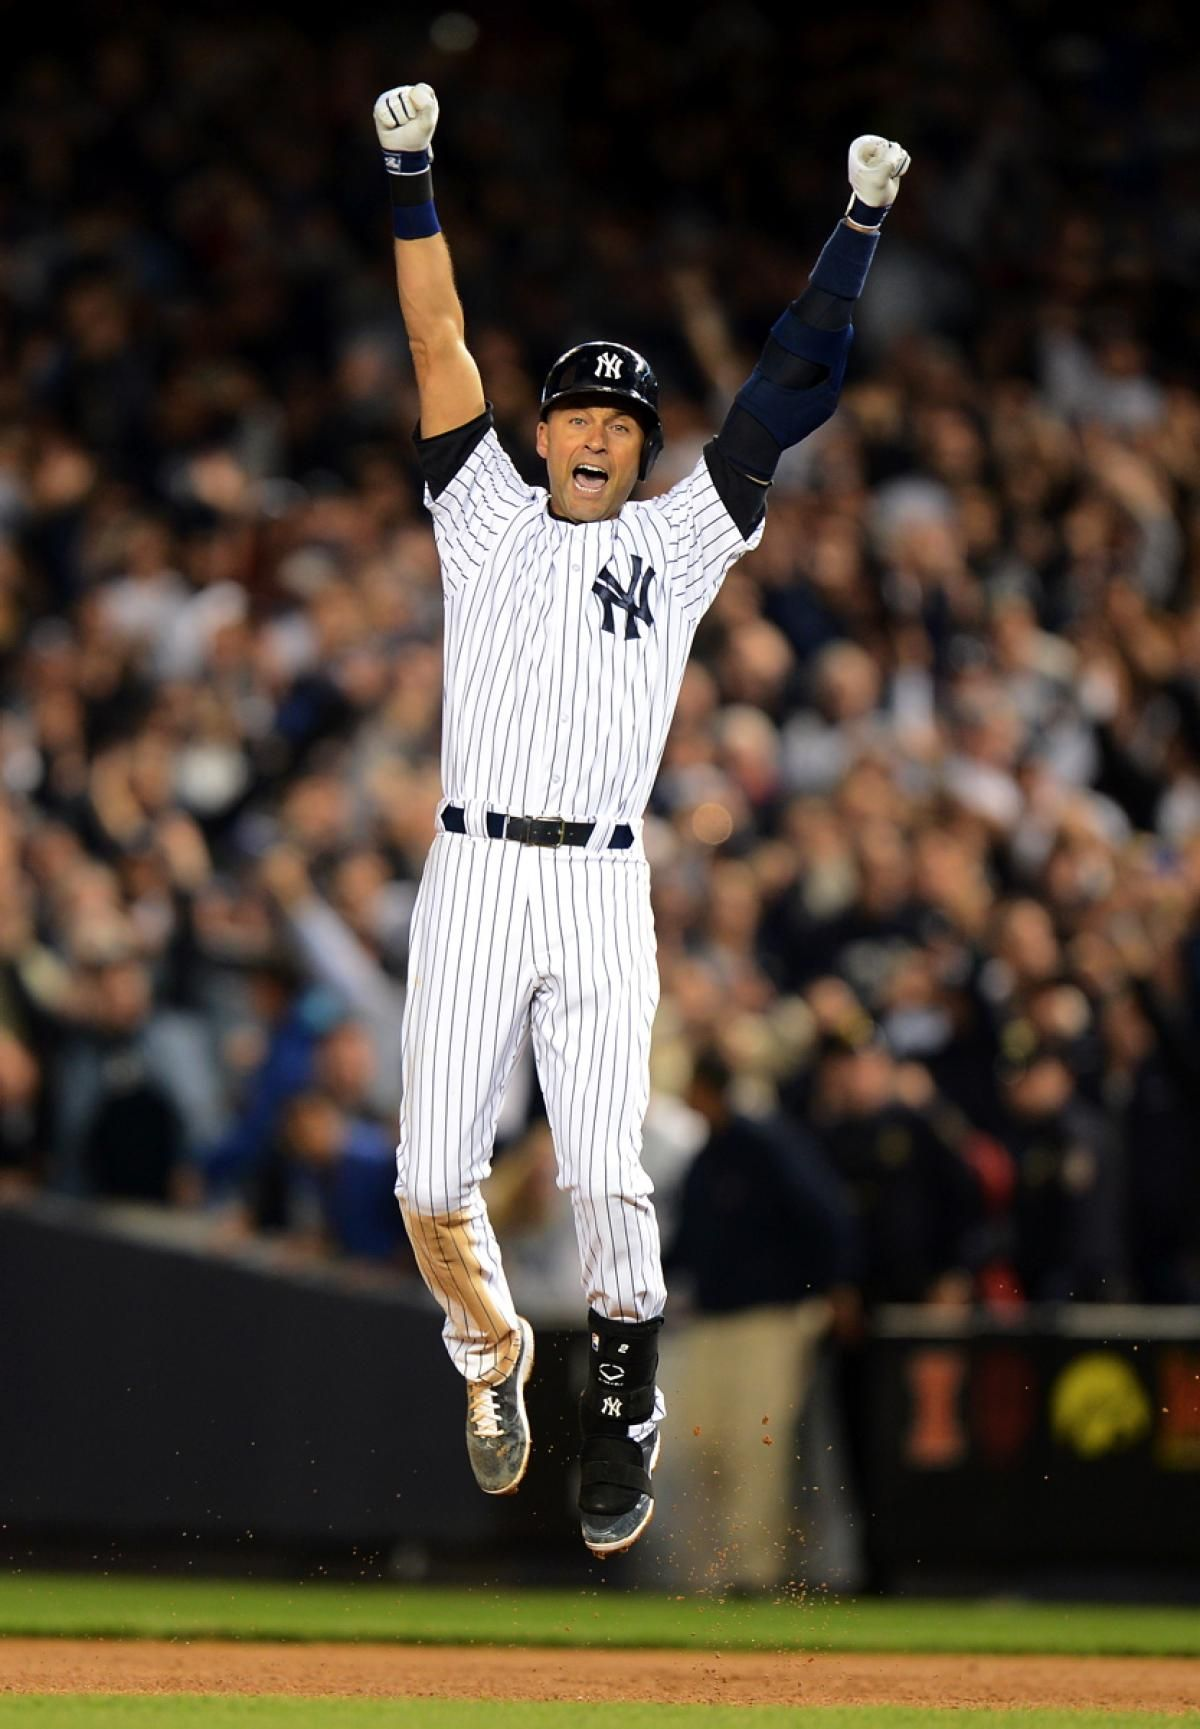 New York Yankees Shortstop Derek Jeter Celebrates As He Ends The Game With A Walk Off During His Last Ga New York Yankees Baseball New York Yankees Derek Jeter